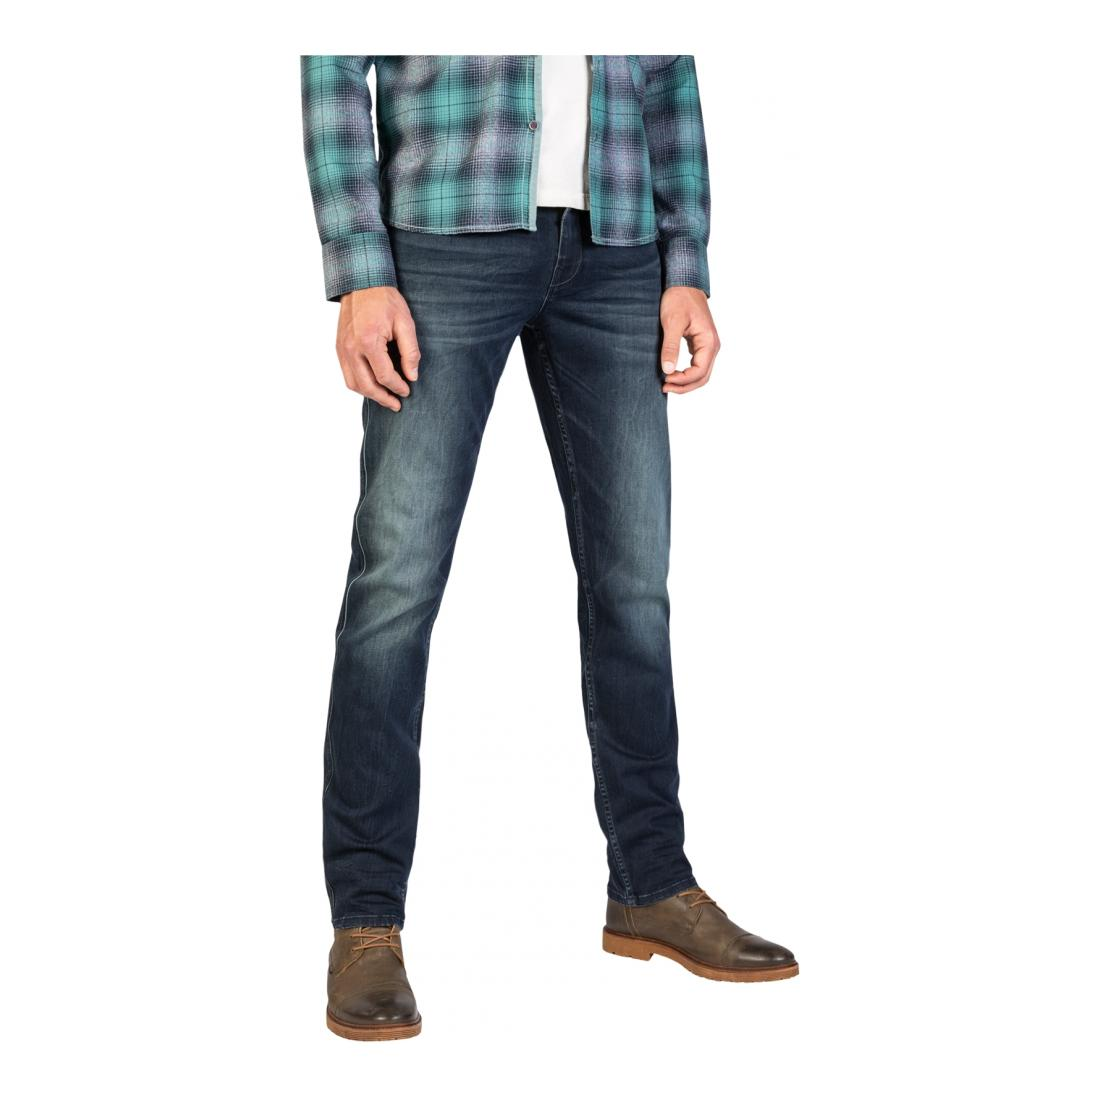 PME Legend Jeans Herren PME LEGEND NIGHTFLIGHT JE